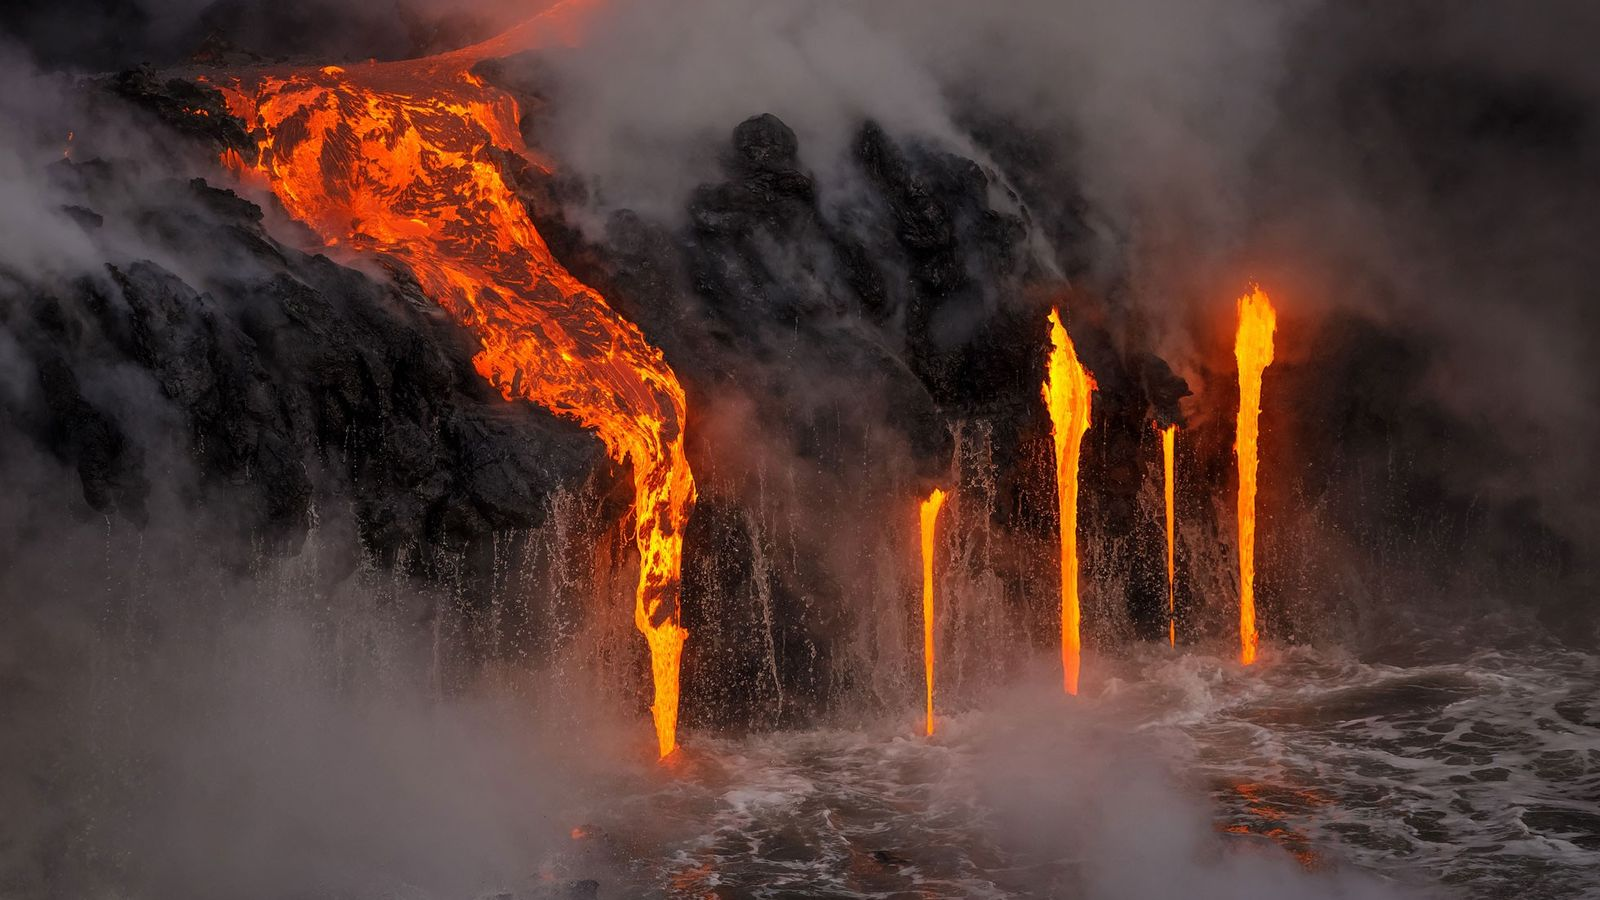 A river of lava bursts out of the side of the mountain and spills into the ...